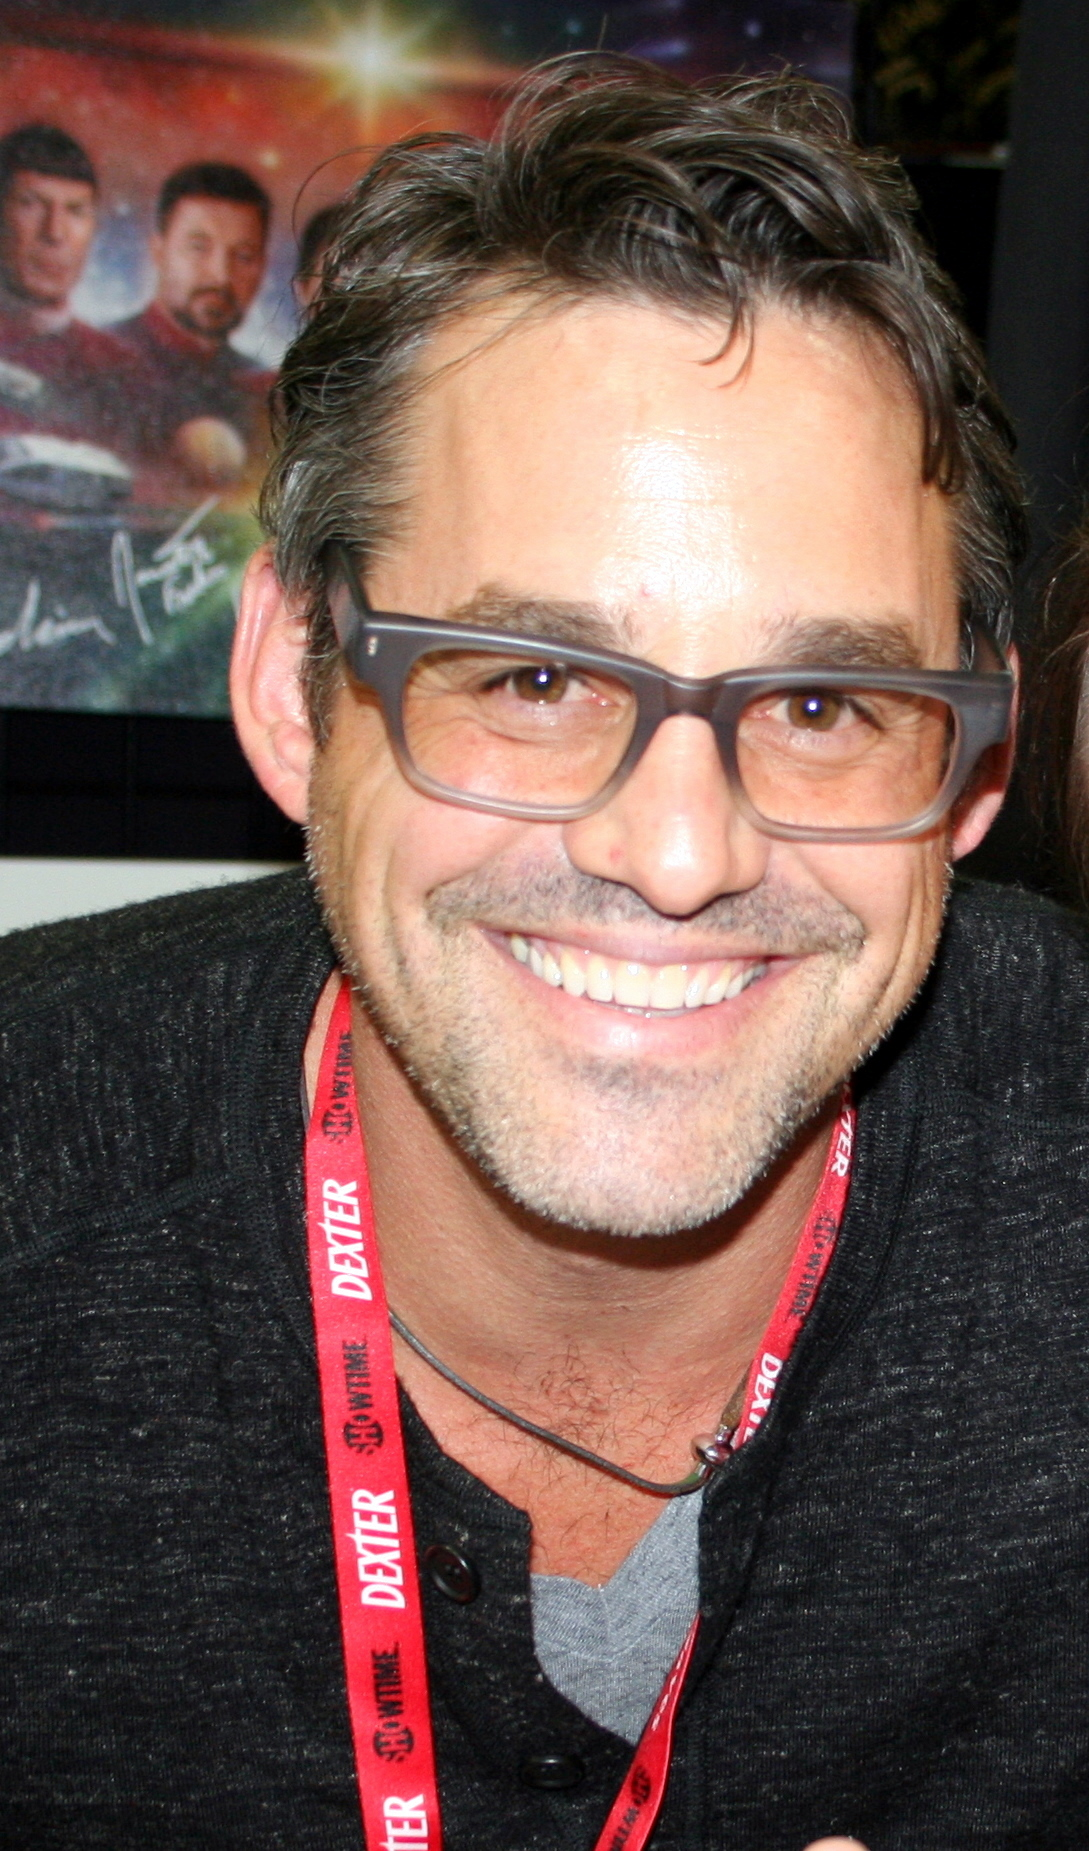 The 46-year old son of father (?) and mother(?), 178 cm tall Nicholas Brendon in 2017 photo